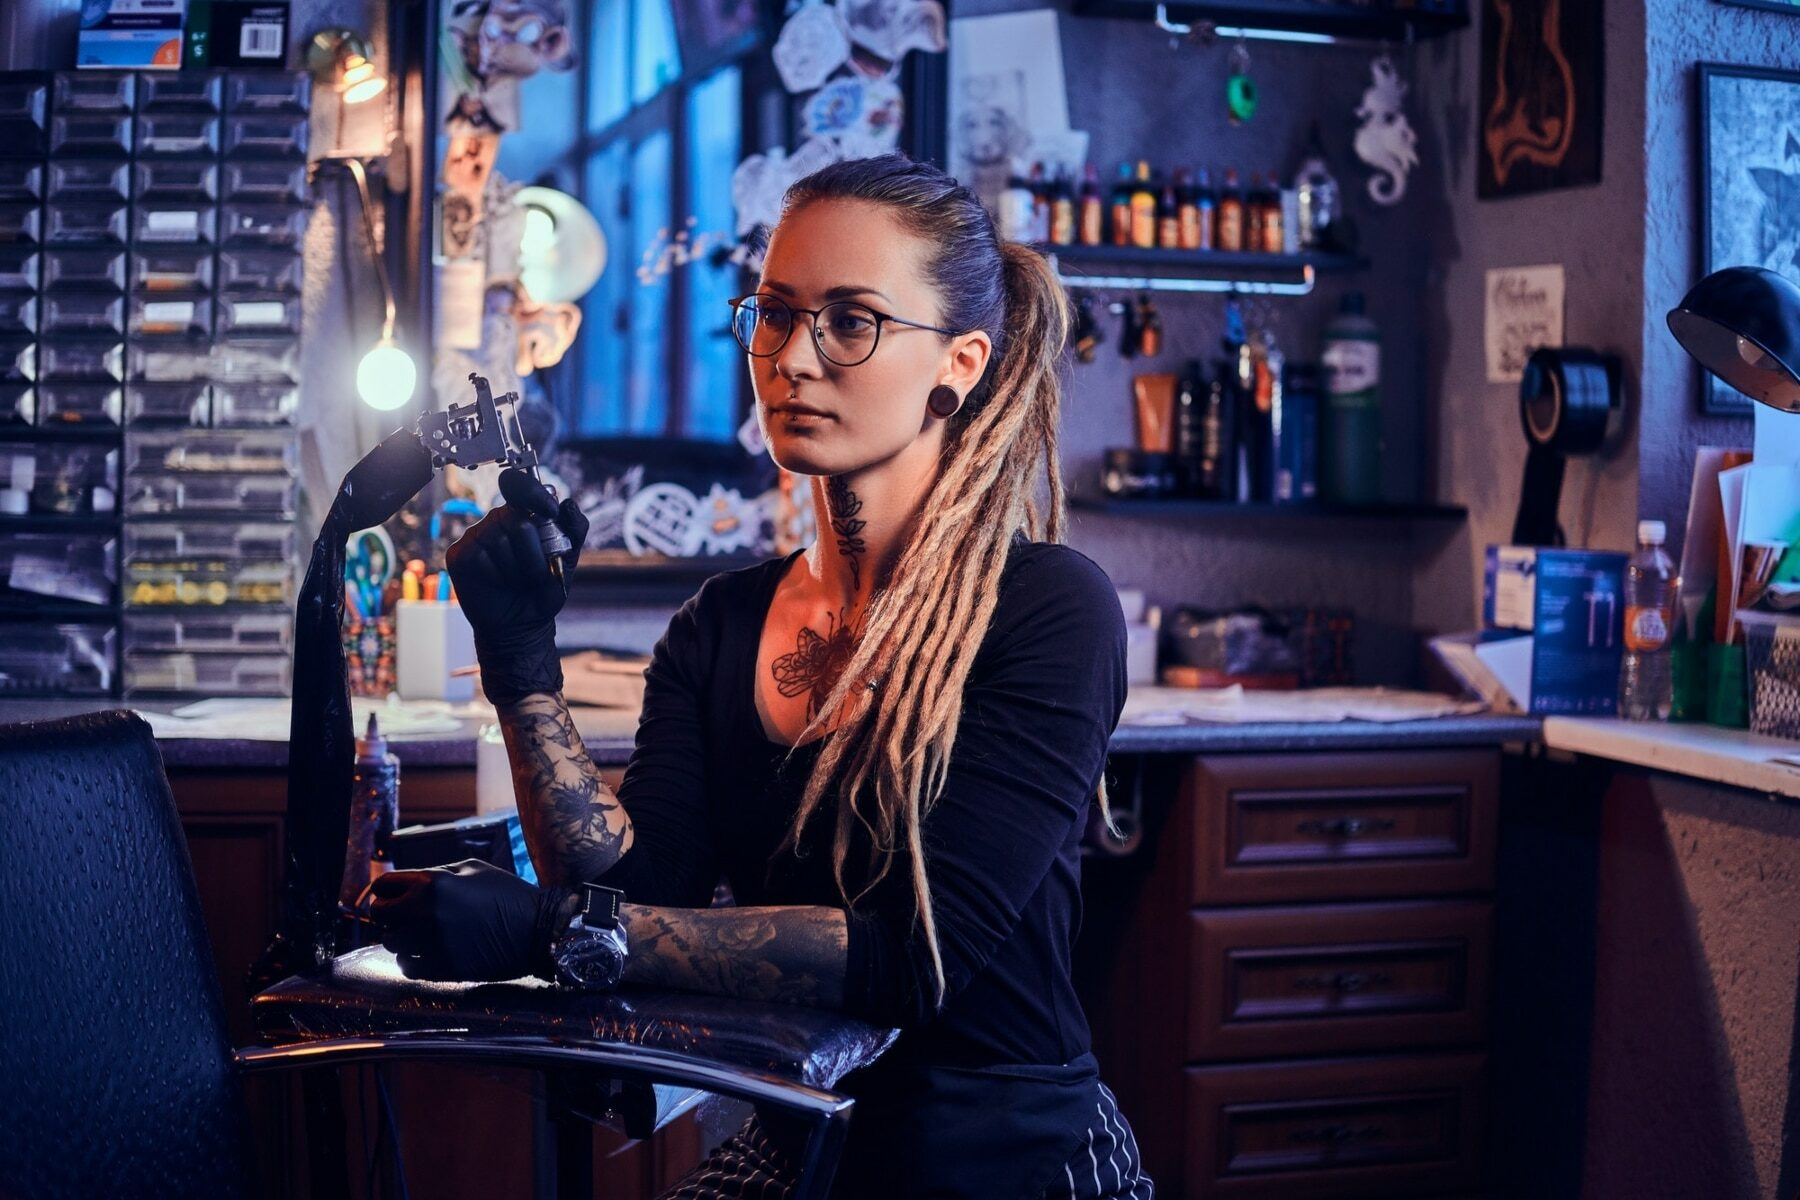 Ancient Celtic Tattoo Renaissance in Contemporary Ink